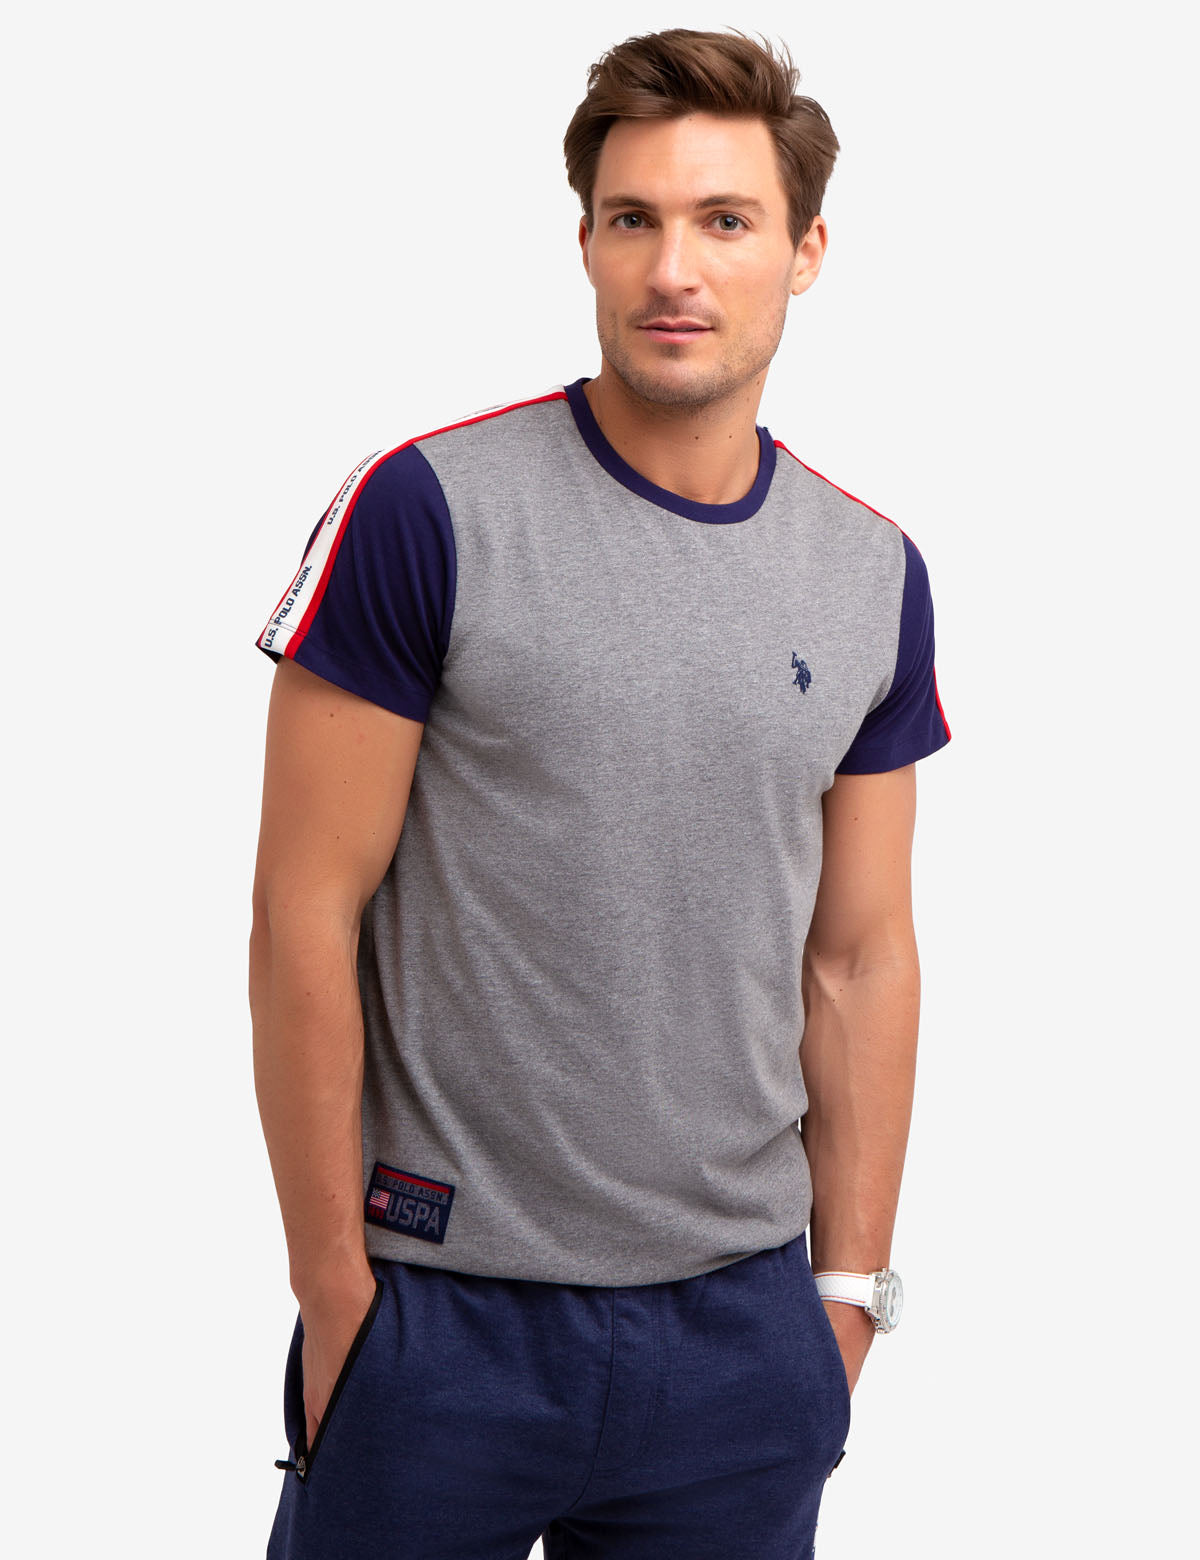 SSNB Mans Casual Soft Round Neck Alphabetic Printing T Shirt